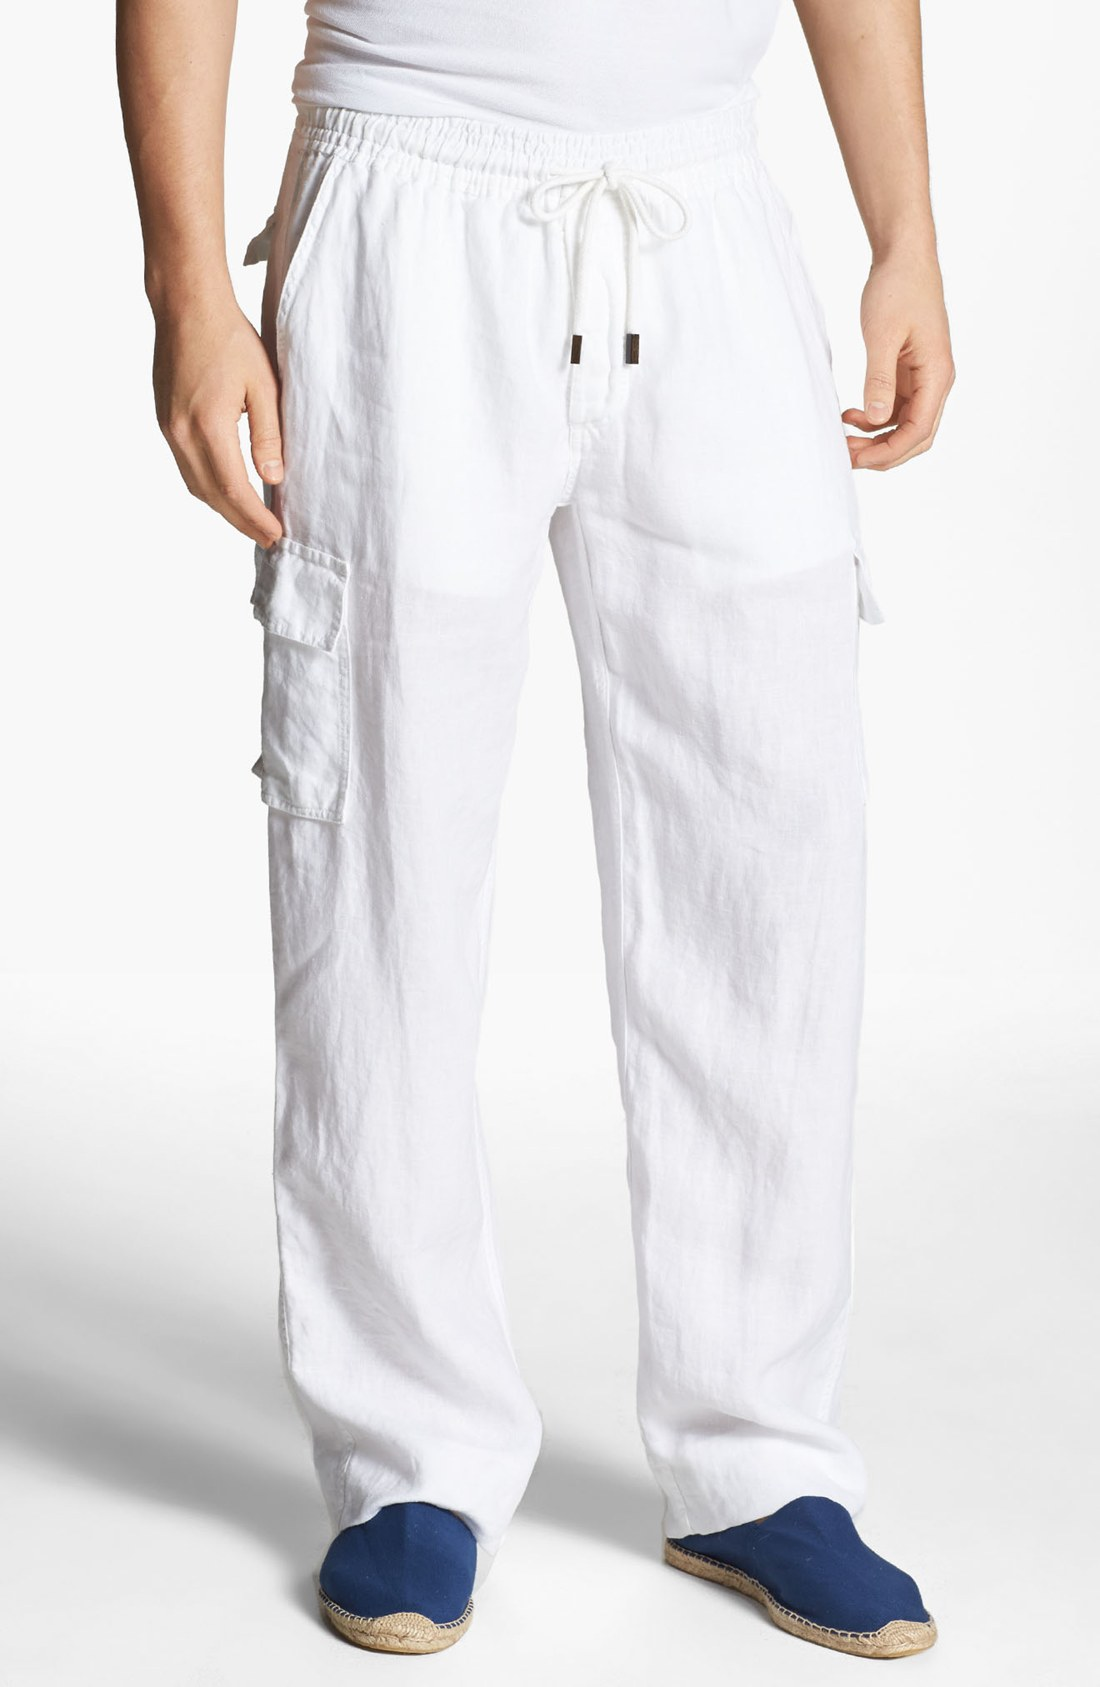 white linen pants men - Pi Pants